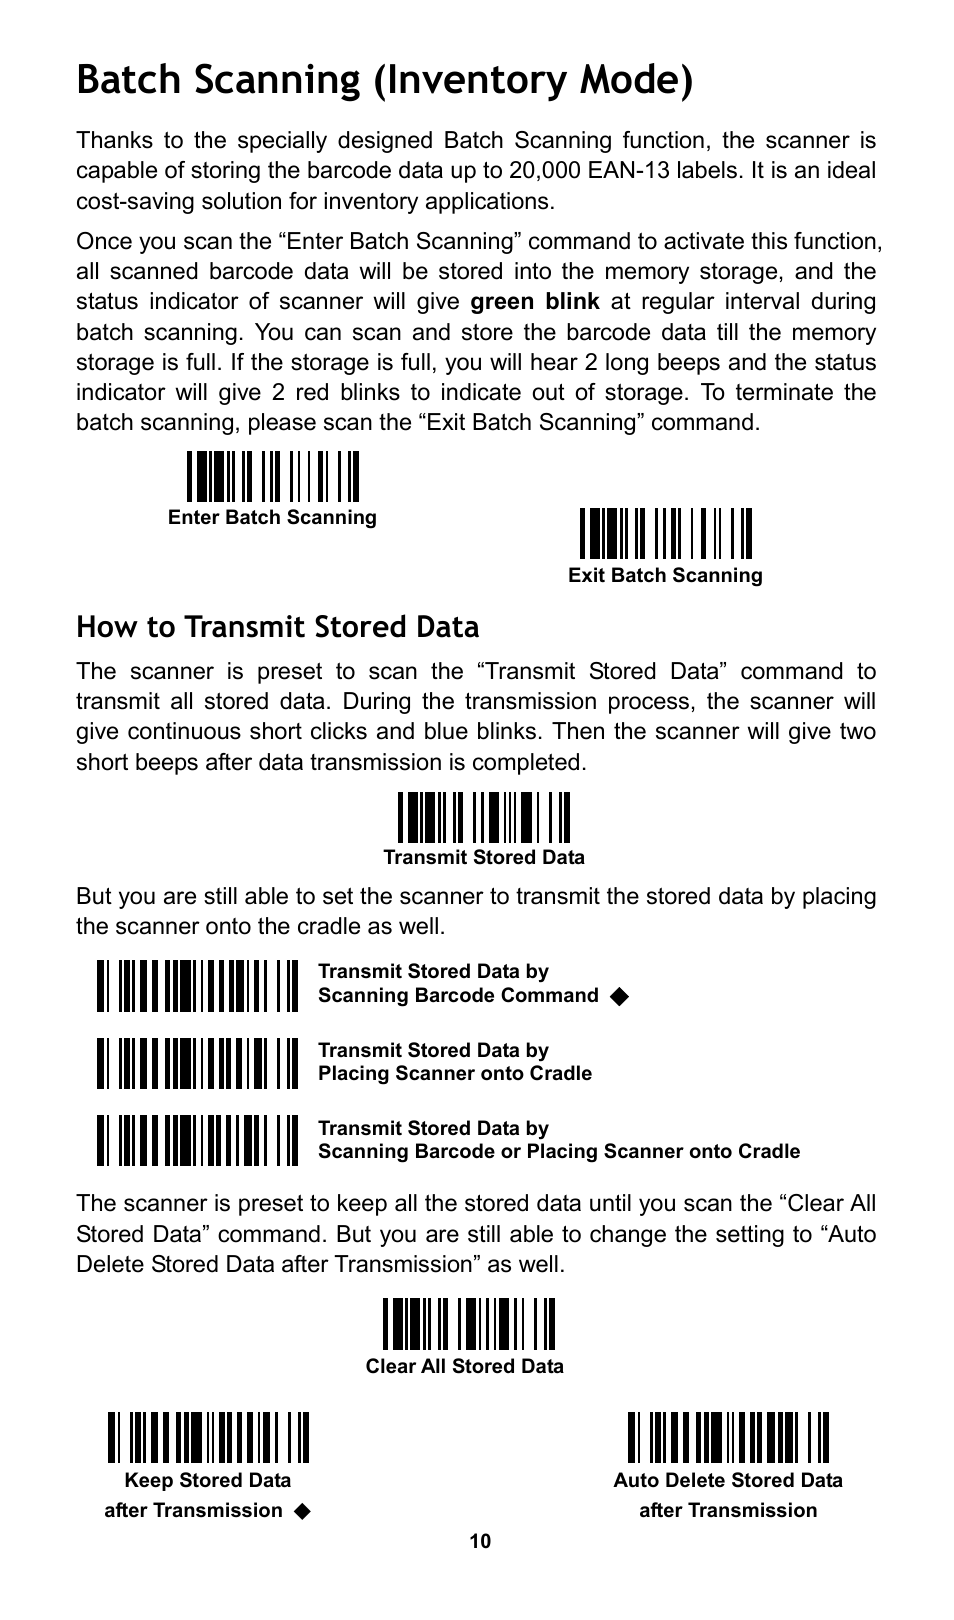 Batch scanning (inventory mode), How to transmit stored data